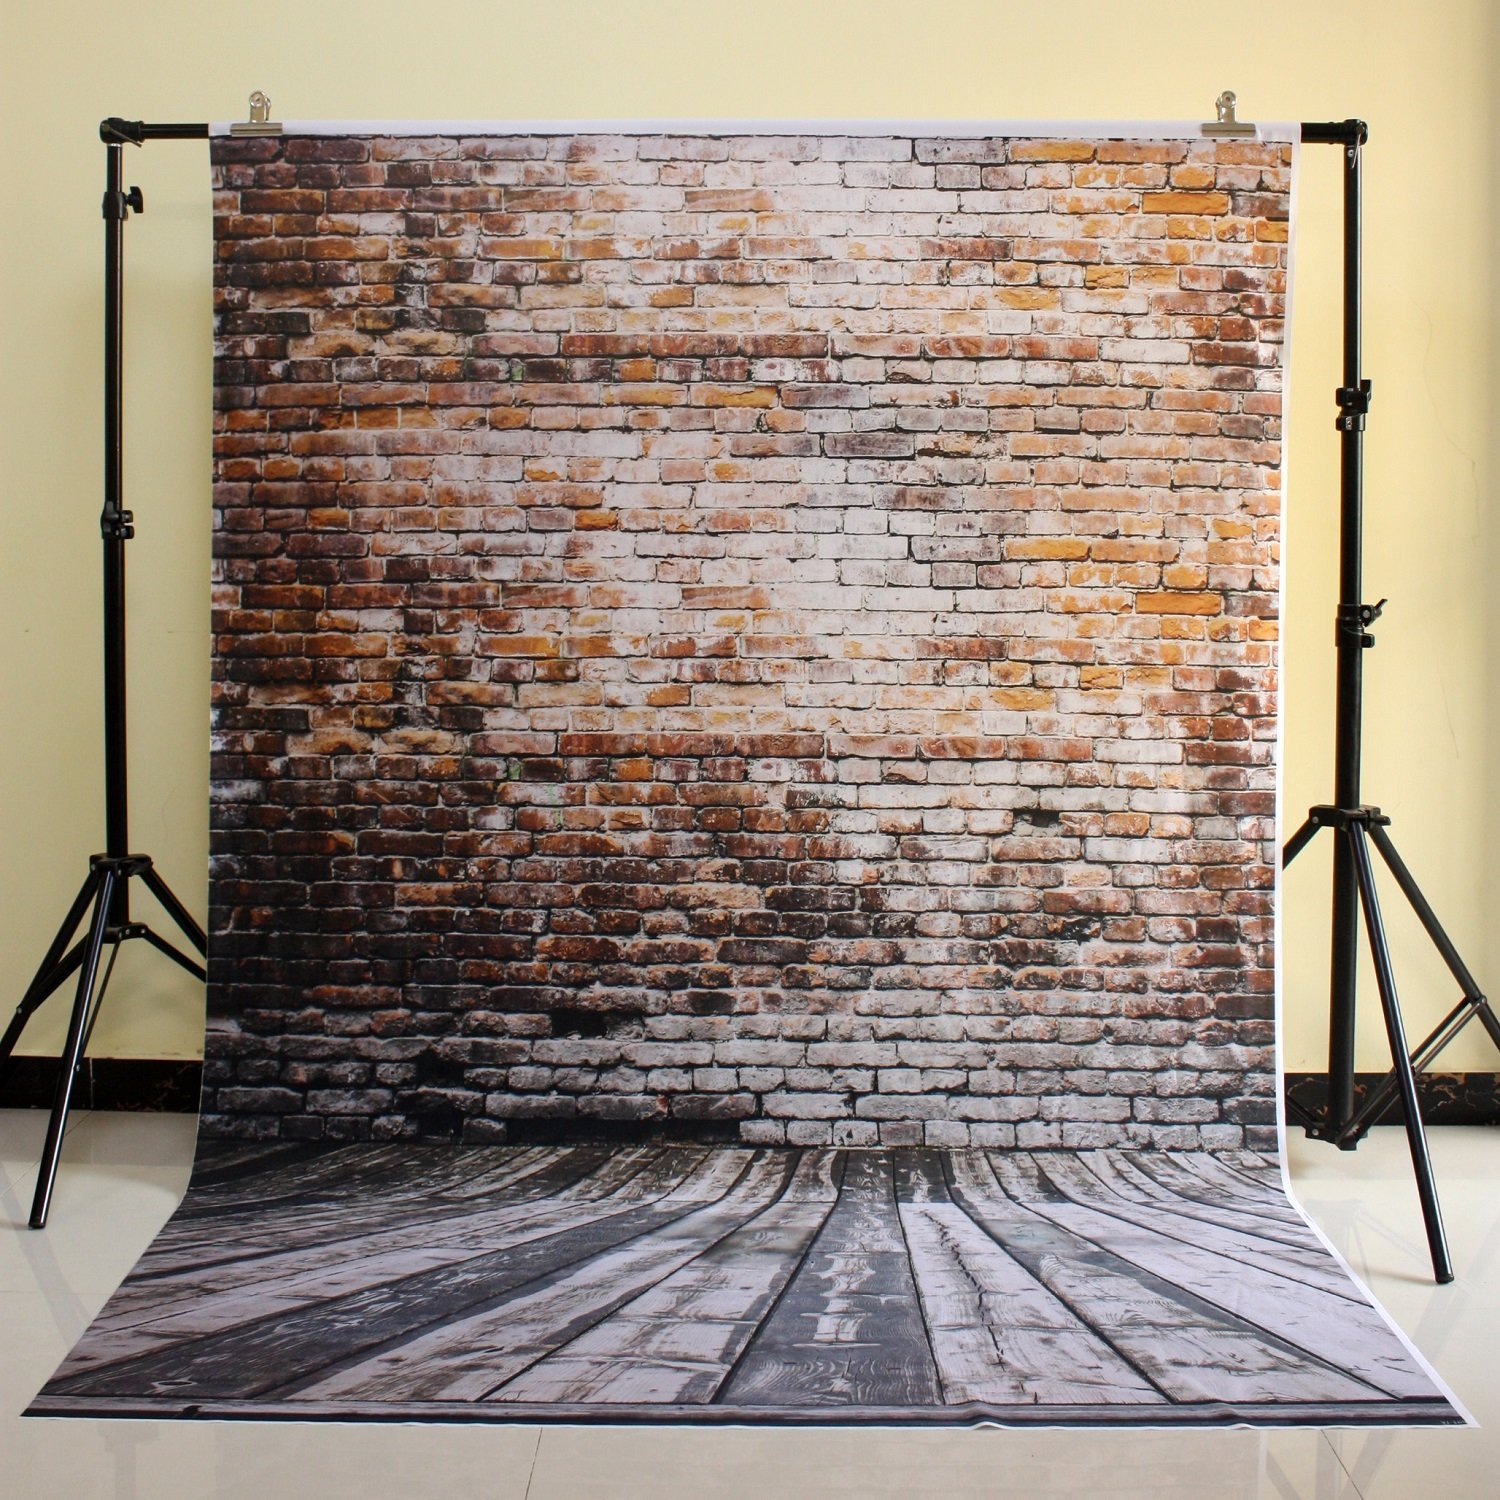 150x220 cm Cotton Polyester Dark Deep Color Background Christmas Party Backdrop Children Photo Backdrop Brick wall D-3489<br>